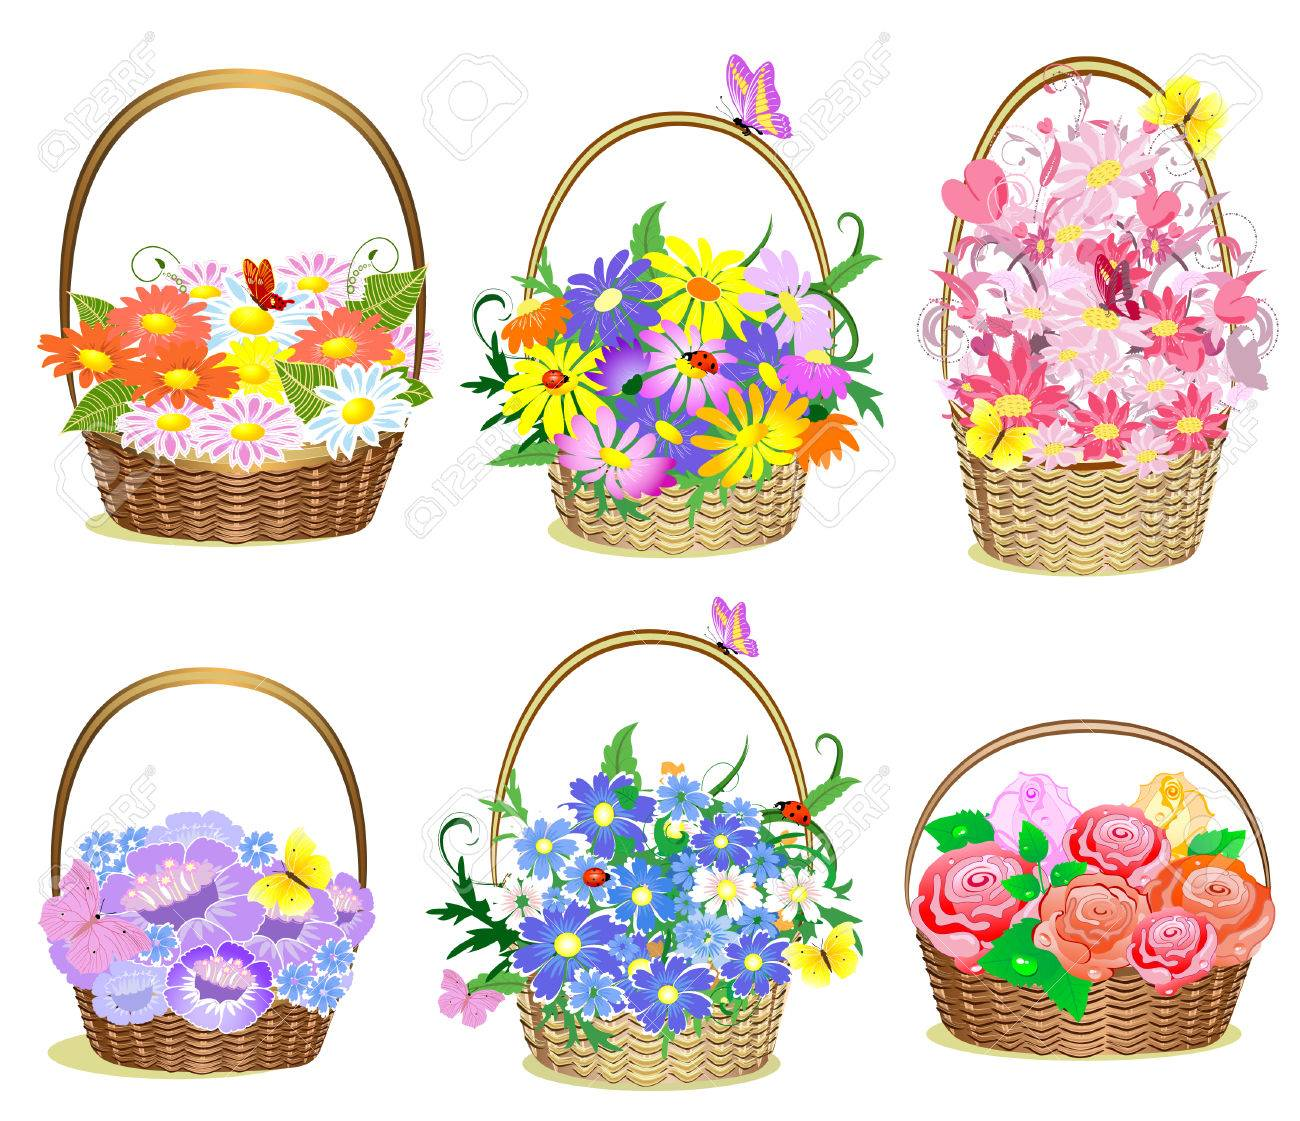 Baskets of flowers Stock Vector - 7718424